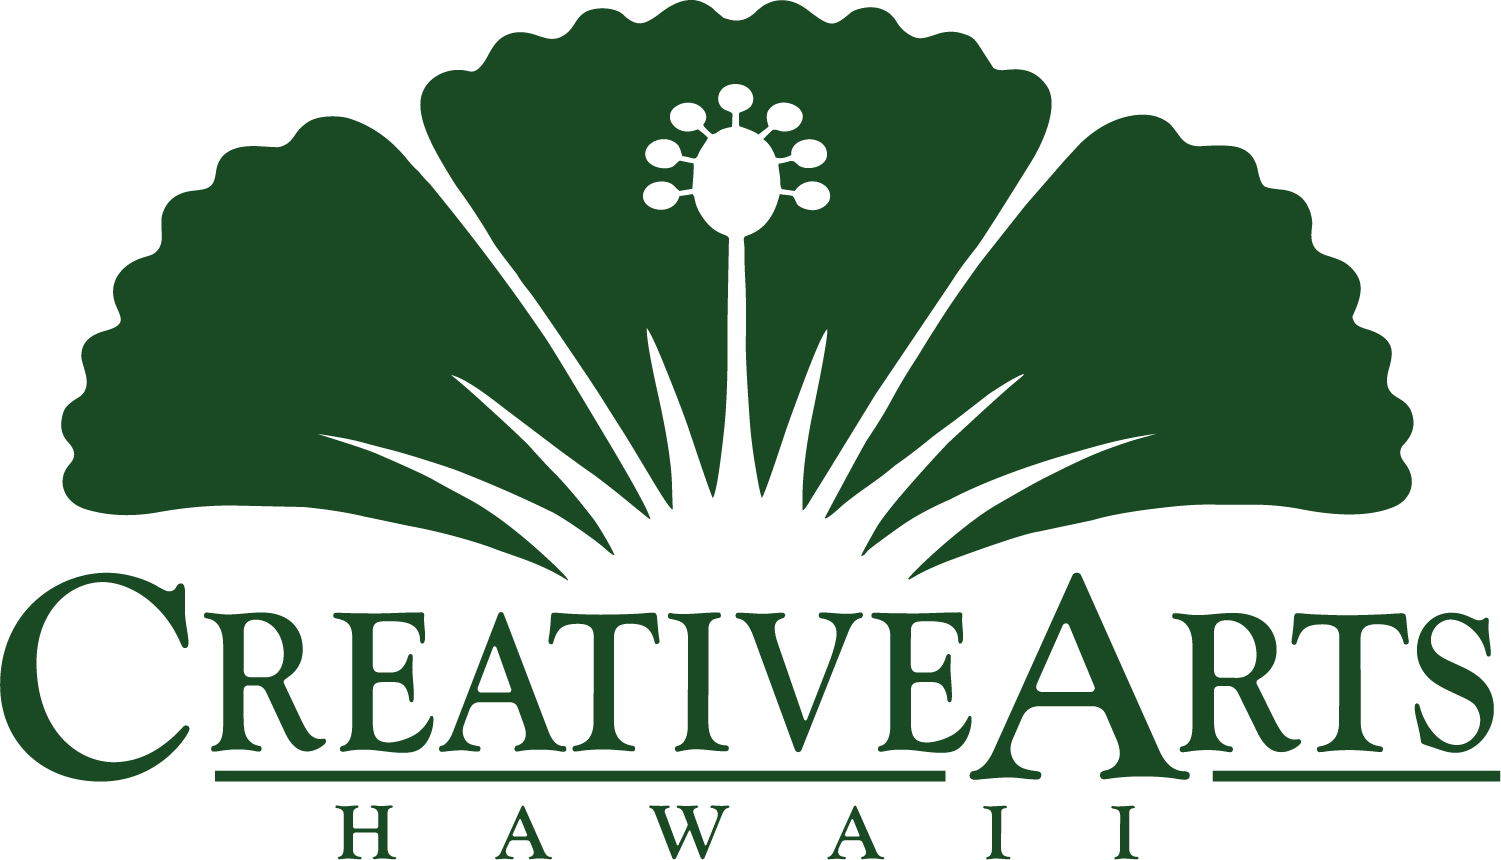 Creative Arts Hawaii | Screen Printing | Embroidery | Graphic Design | Hilo | Kona